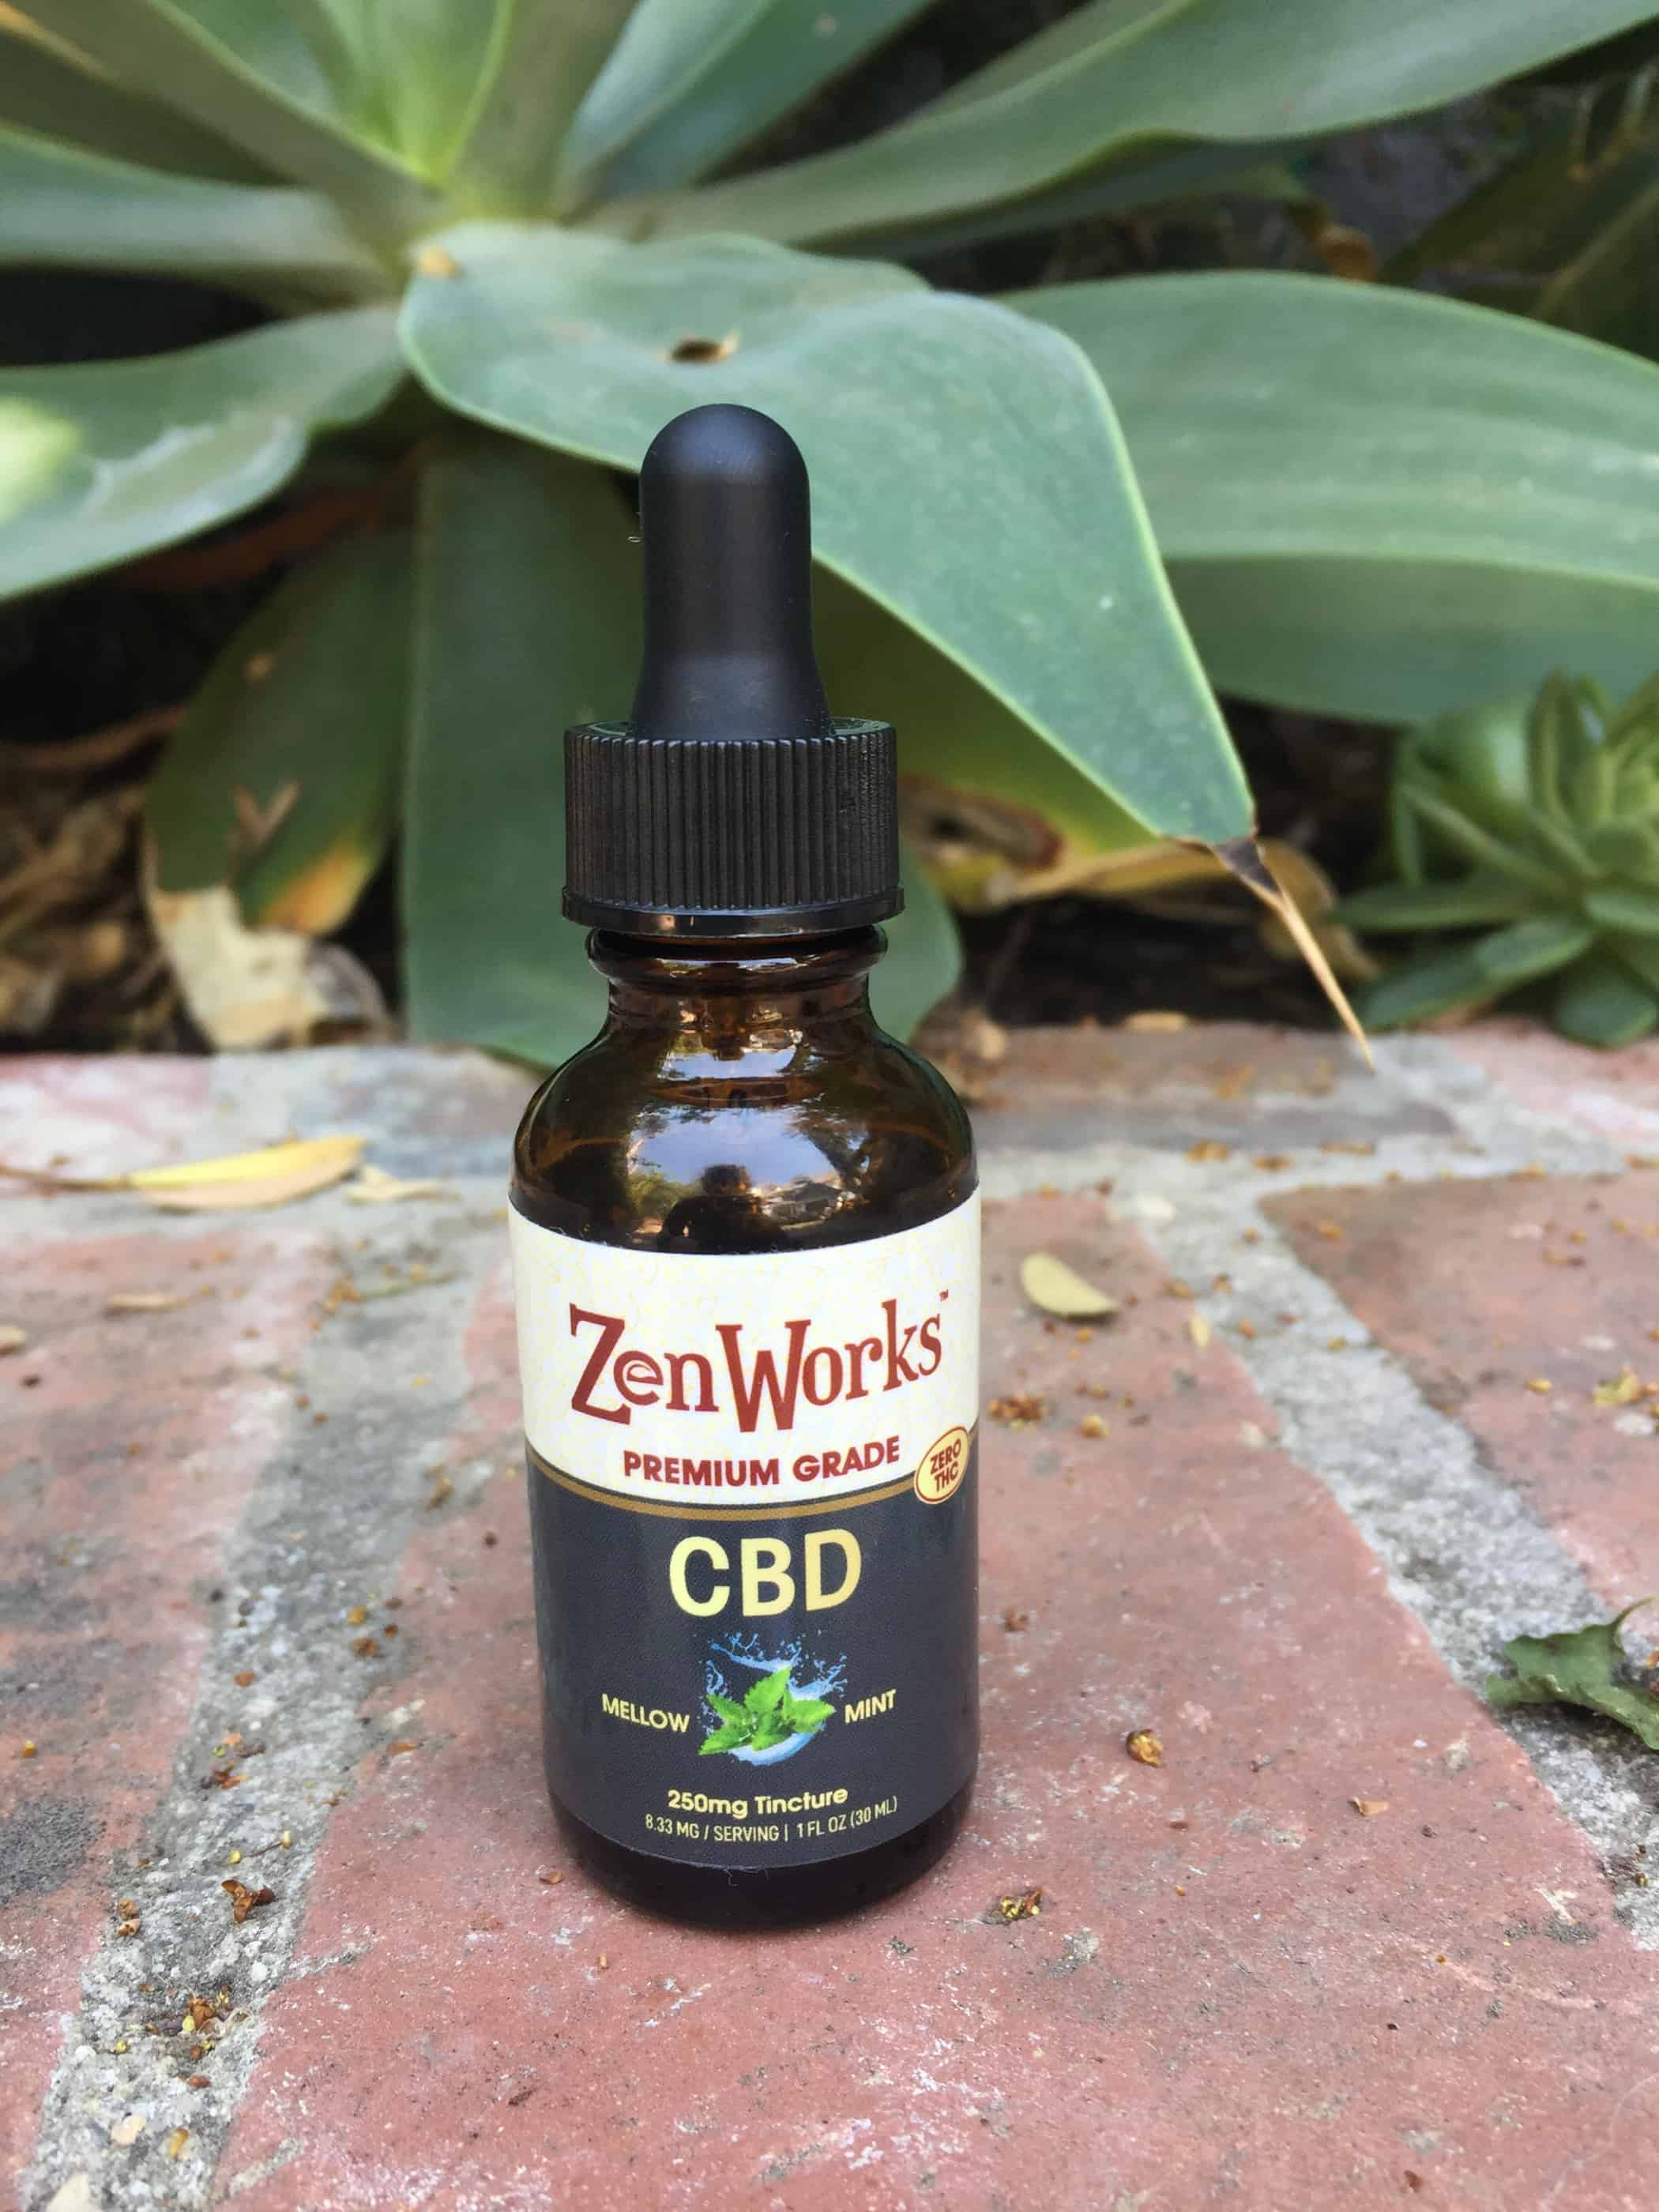 zenworks cbd oil tincture 250 mg mellow mint save on cannabis review